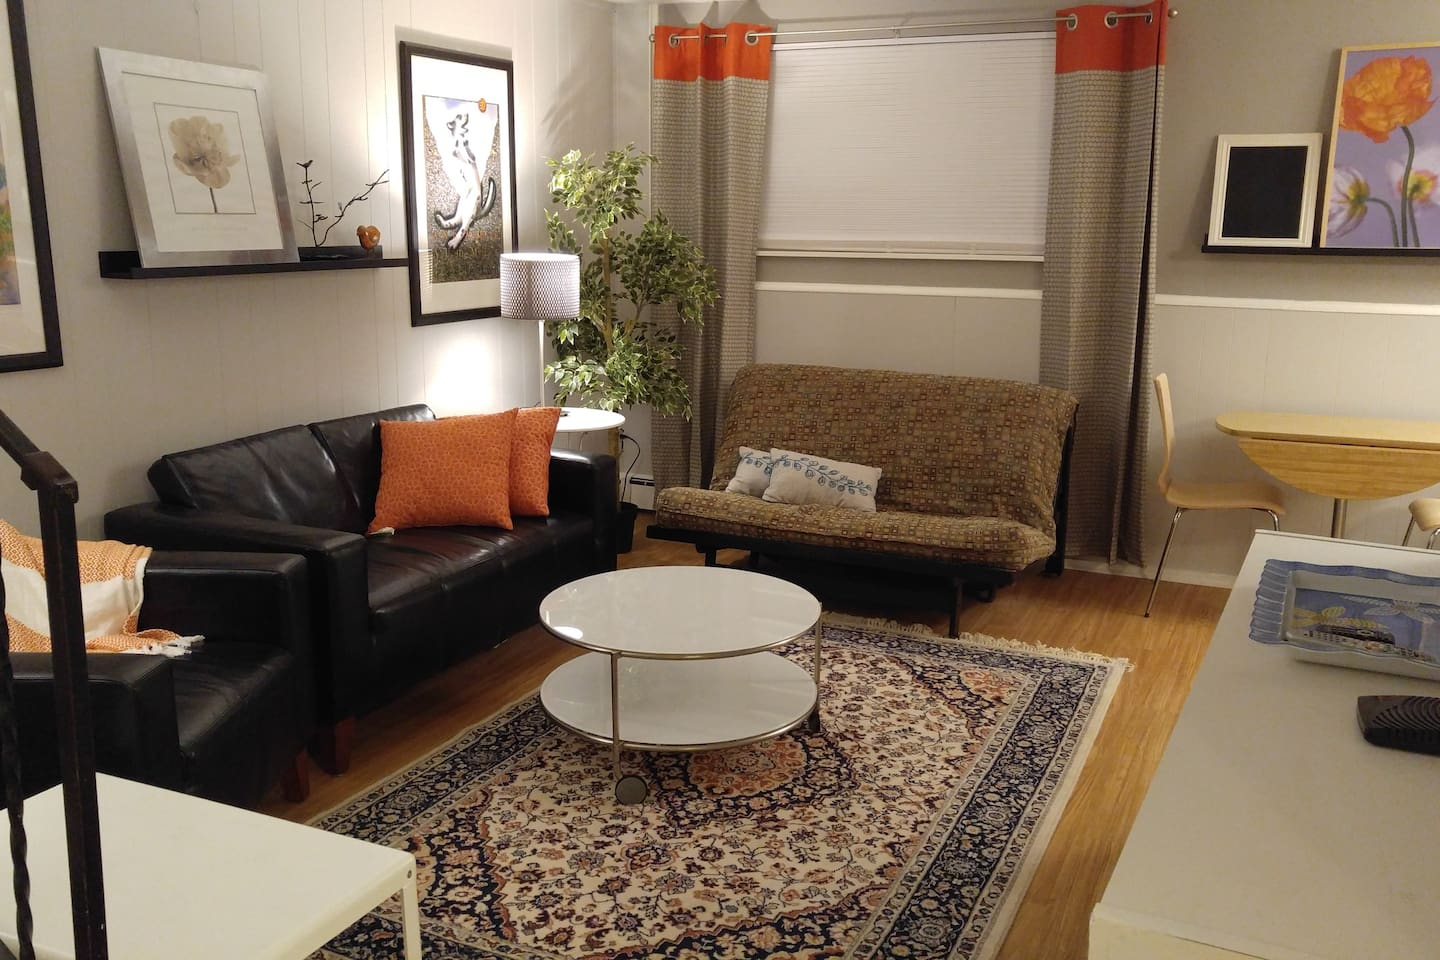 Living room with cable TV, Wifi and futon that sleeps 2. Extra table may be used as a work space.